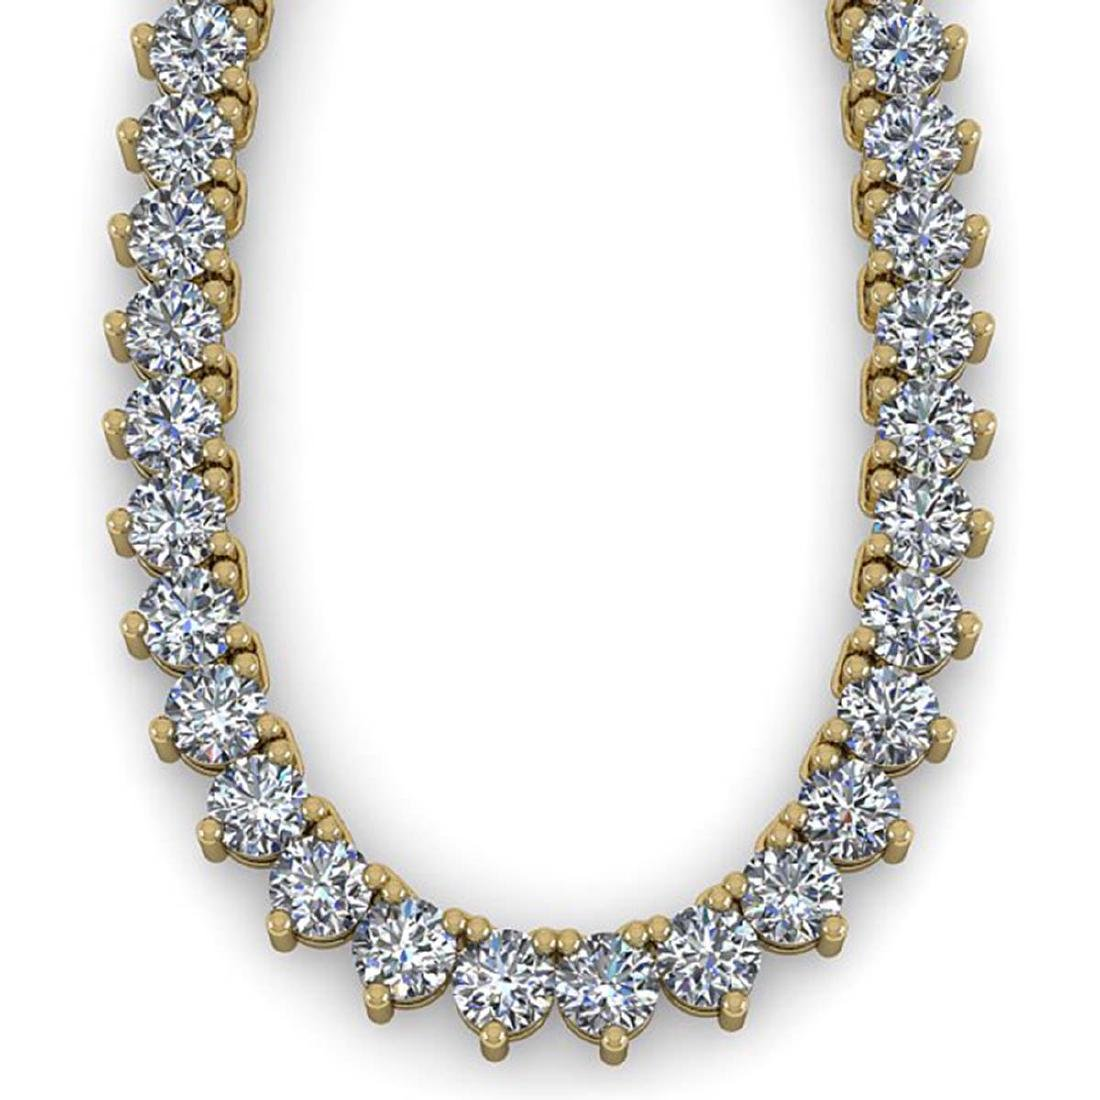 65 ctw Solitaire SI Diamond Necklace 14K Yellow Gold - - 2